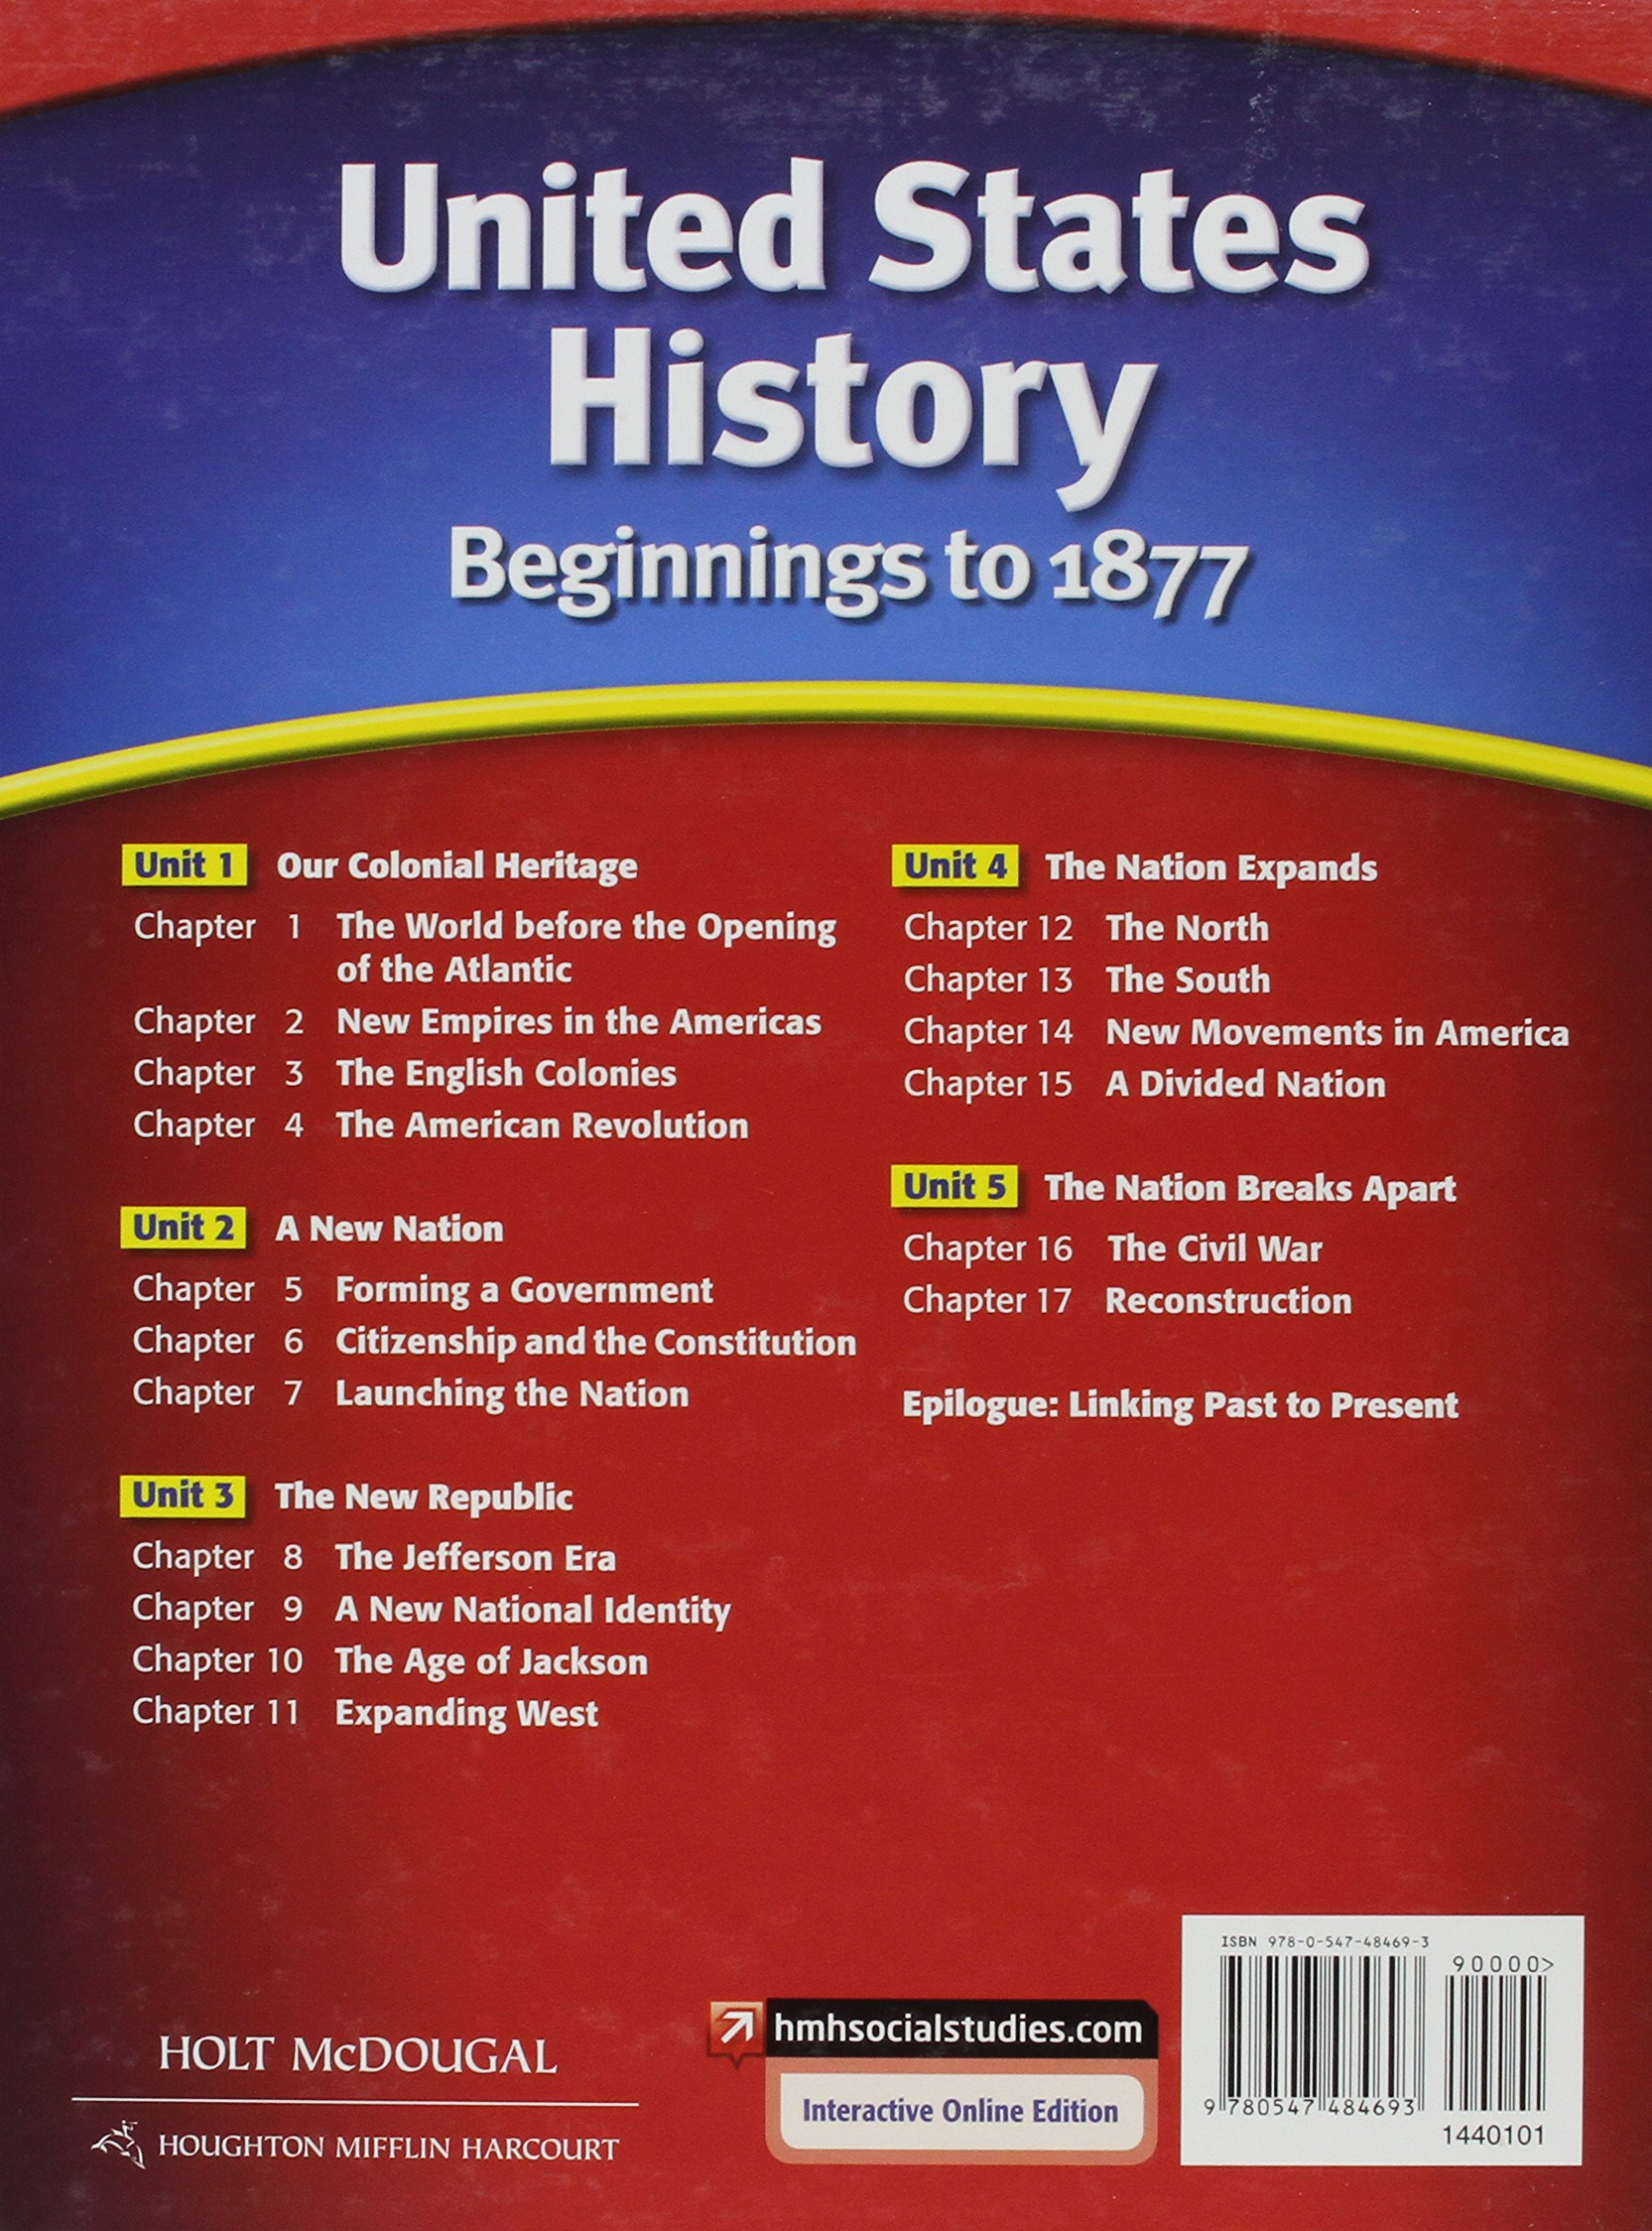 United states history student edition beginnings to 1877 2012 holt united states history student edition beginnings to 1877 2012 holt mcdougal 9780547484693 amazon books fandeluxe Images